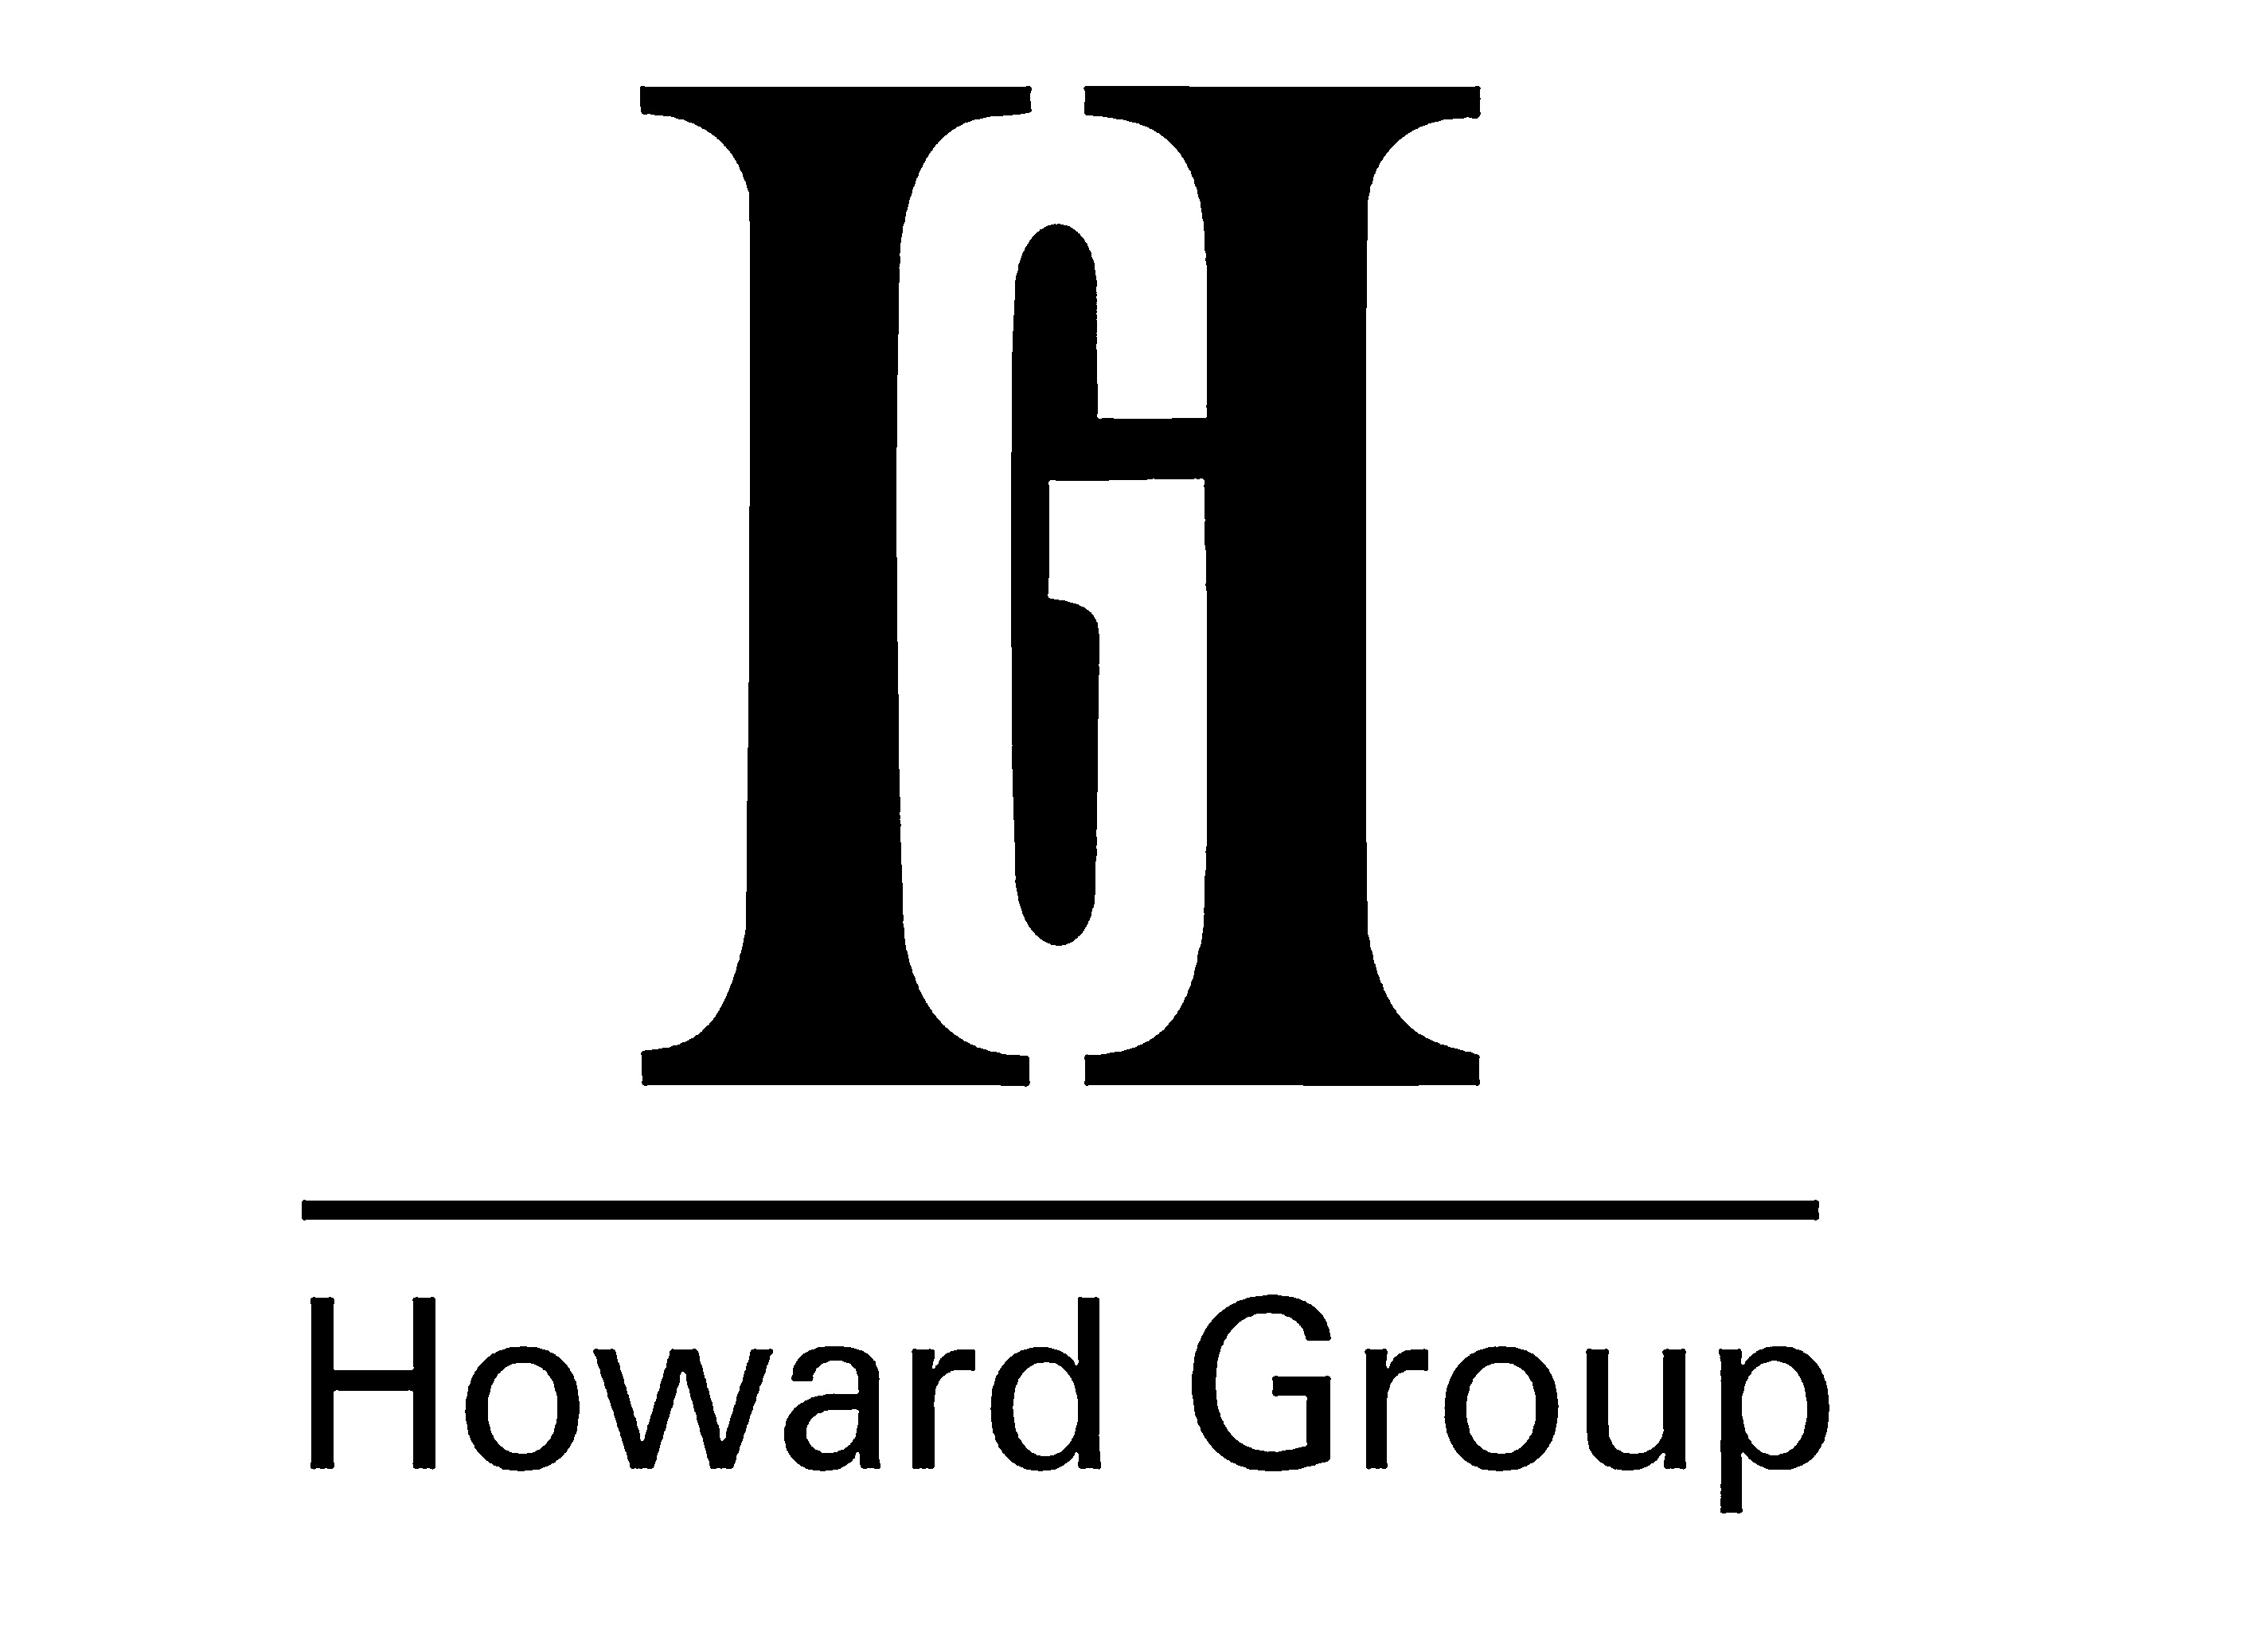 Howard Group